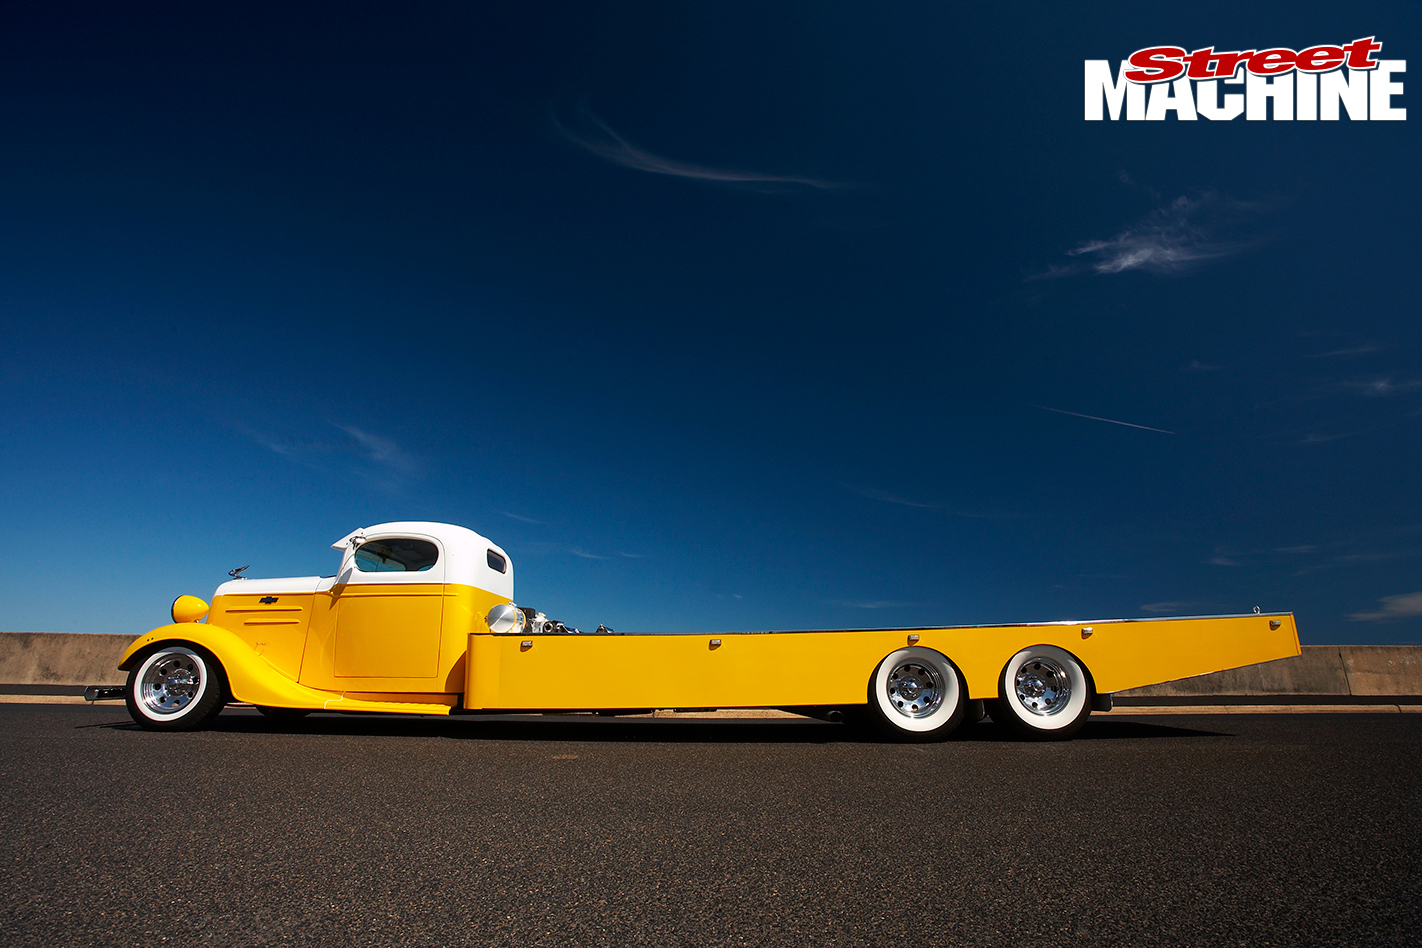 Chev -tow -truck -side